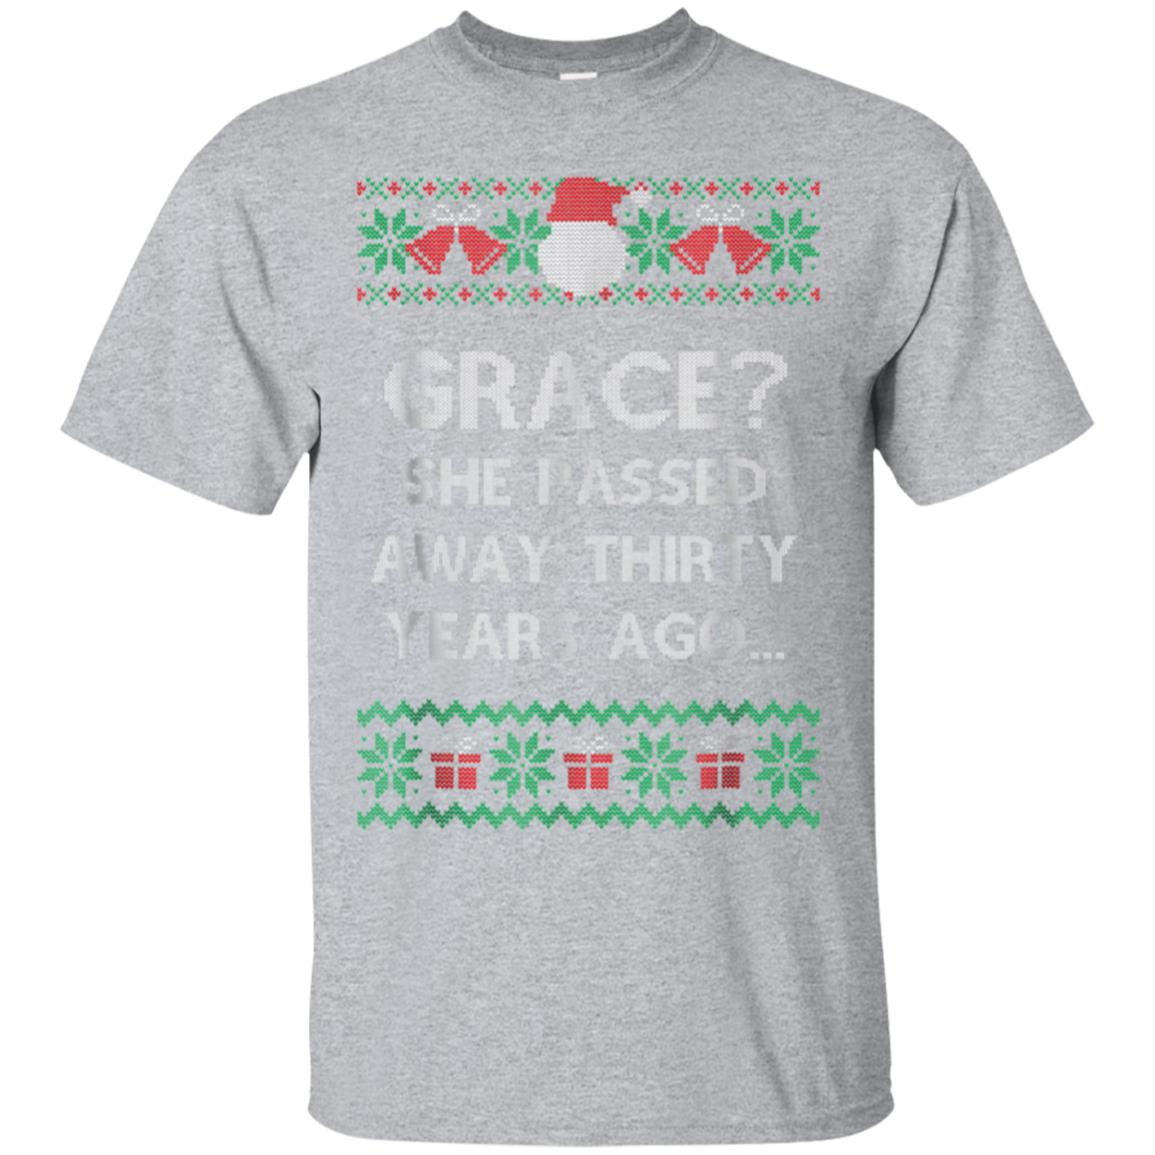 Christmas Family Winter Vacation Ugly Sweater Style T-shirt 99promocode